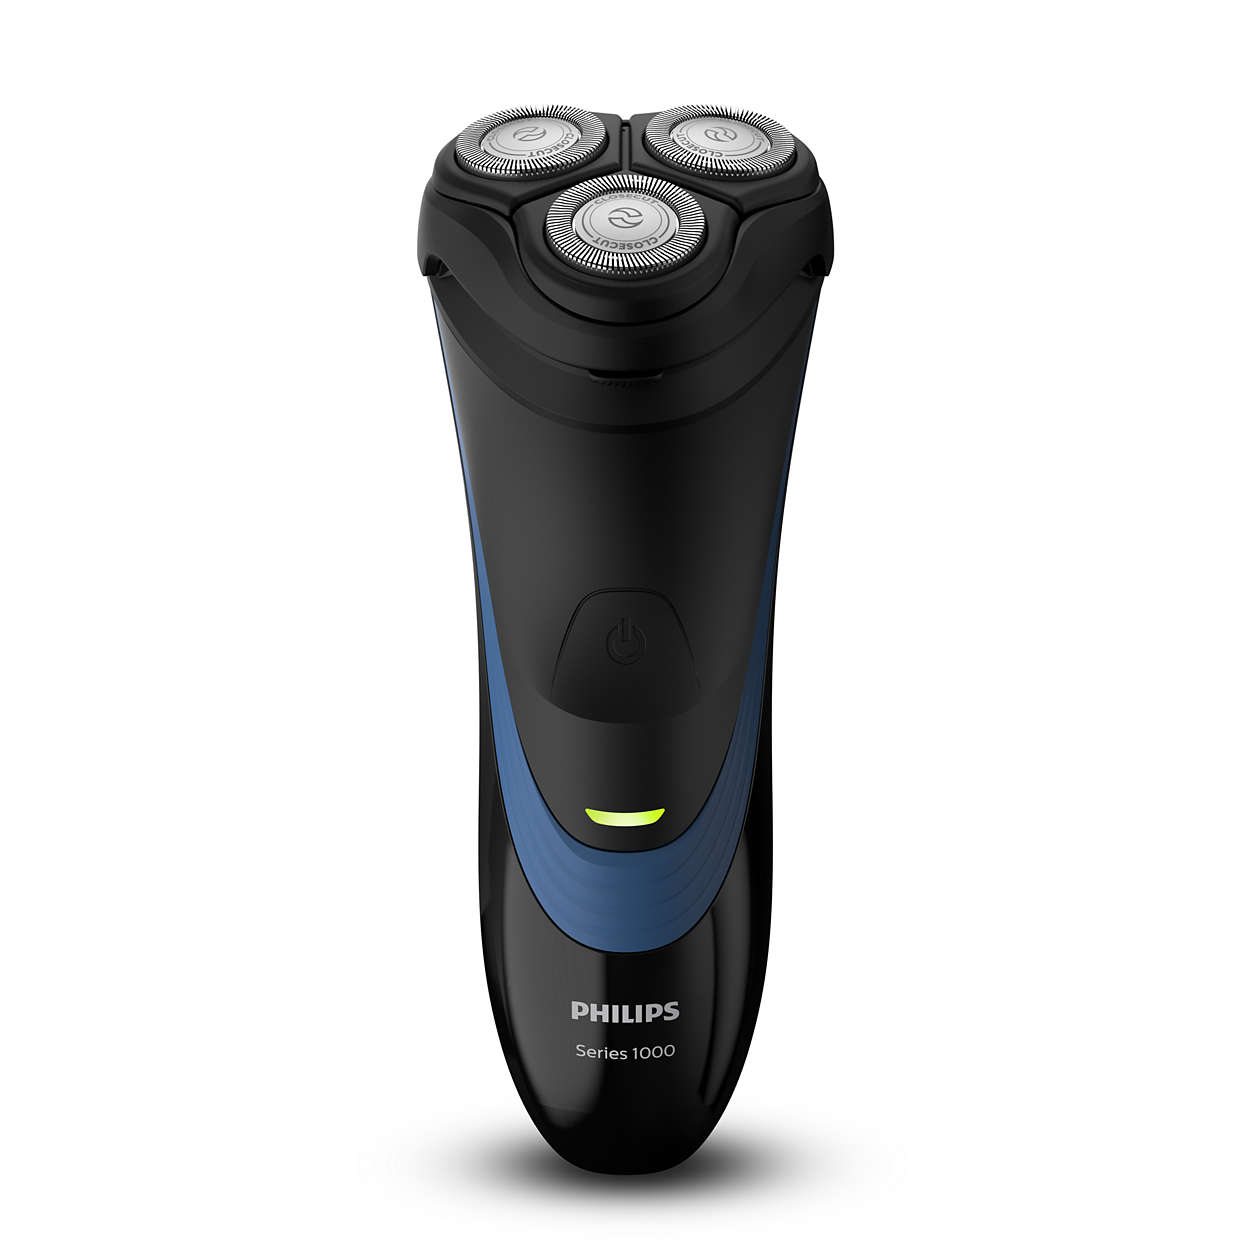 Philips S1510/04 series 1000 Dry Electric Shaver / Beard Trimmer / Cordless / Rechargeble